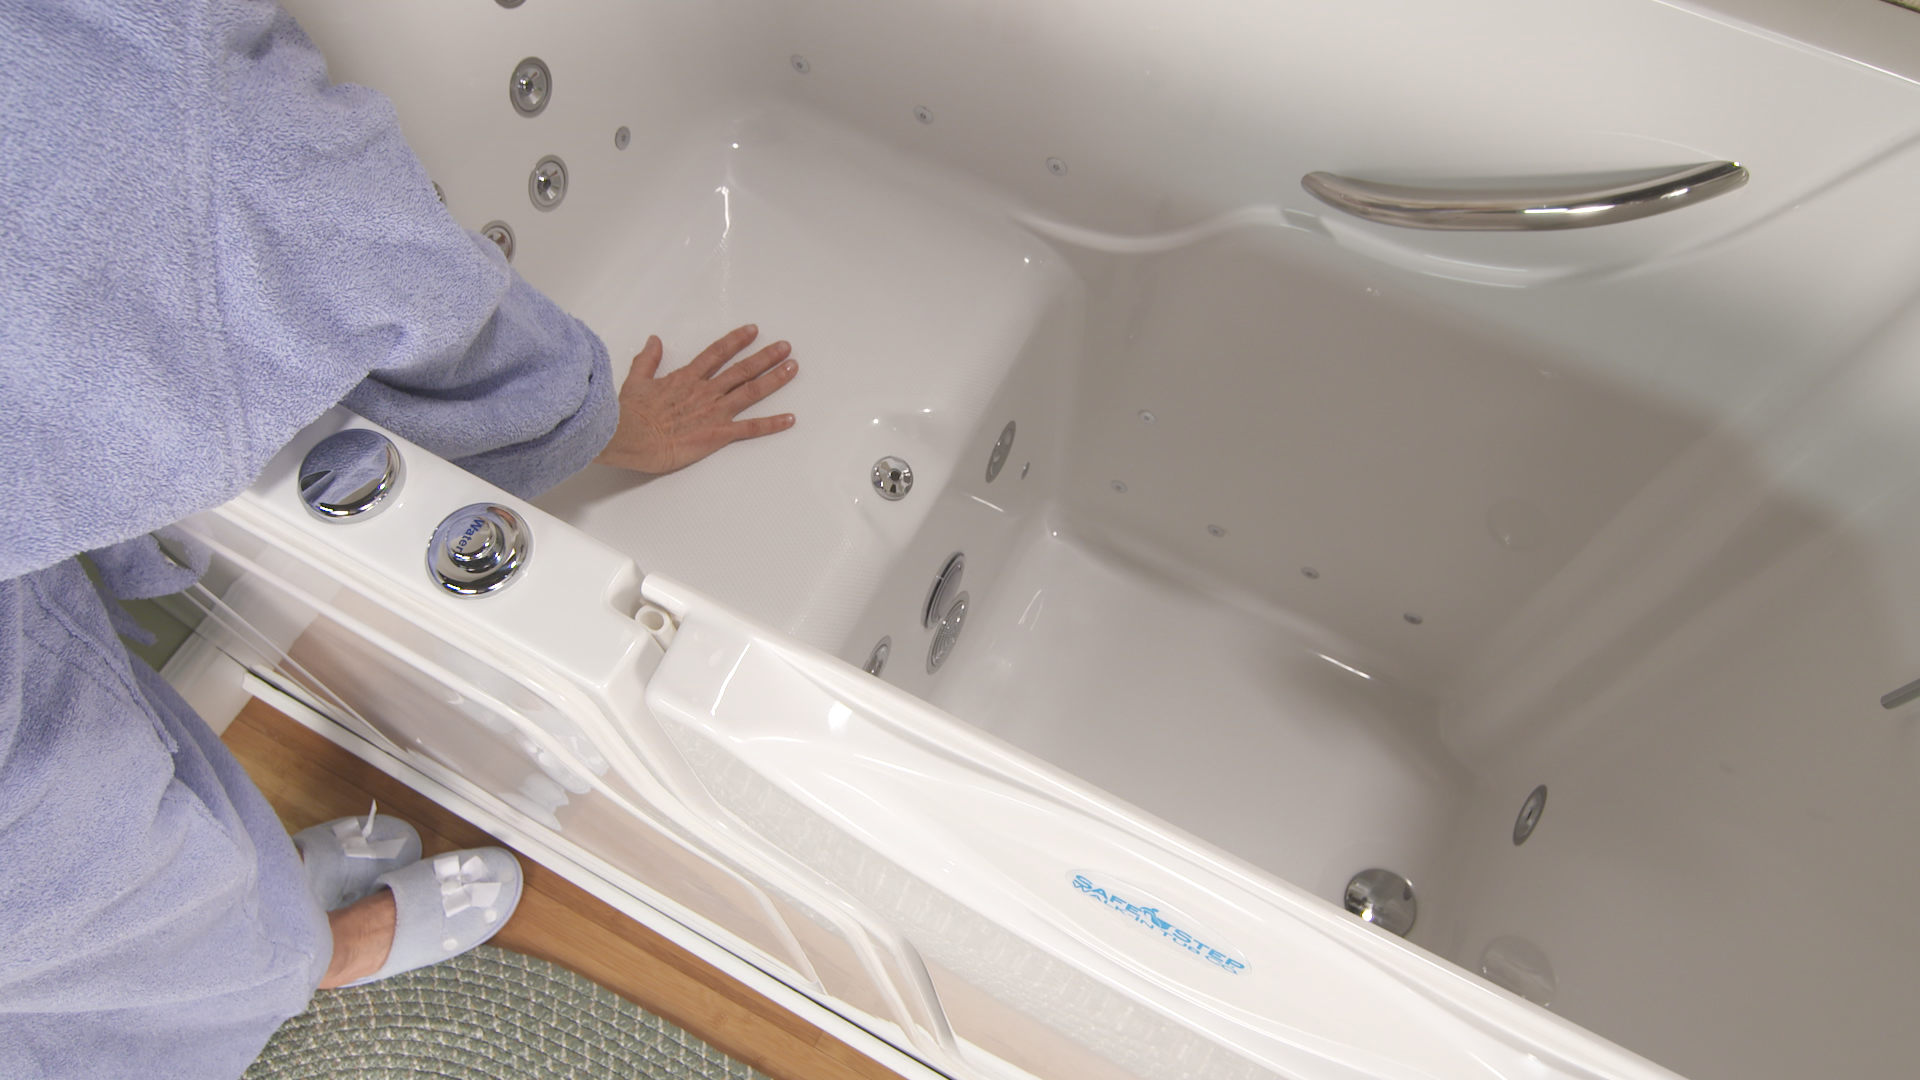 The new Safe Step Walk-In Tub features a comfy heated seat and back to keep you warm and relaxed throughout your bath! Because #safetyneverfeltsogood!